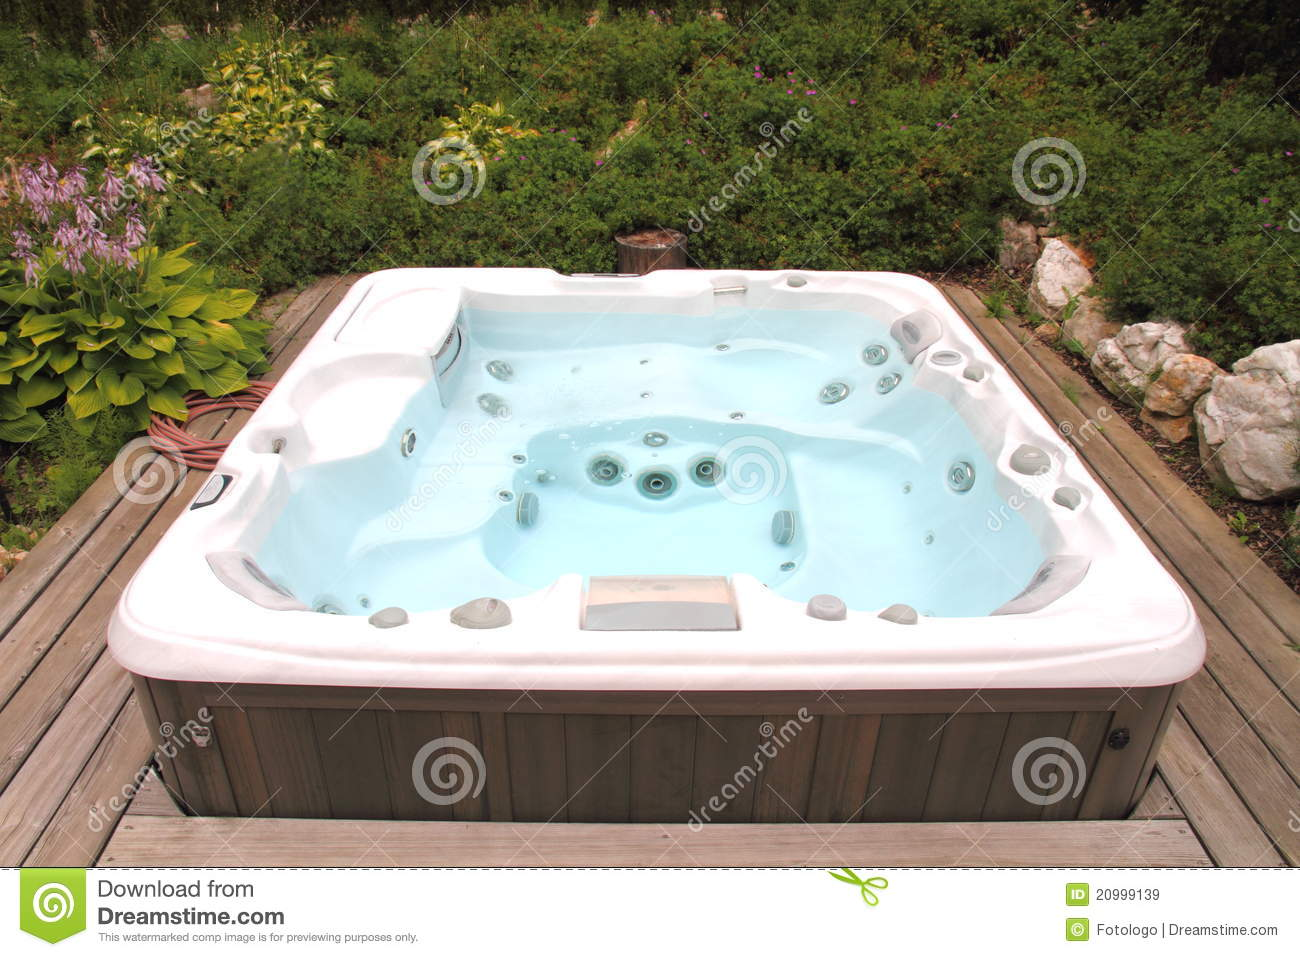 Hot Tub stock image. Image of natural, deck, outdoors - 20999139